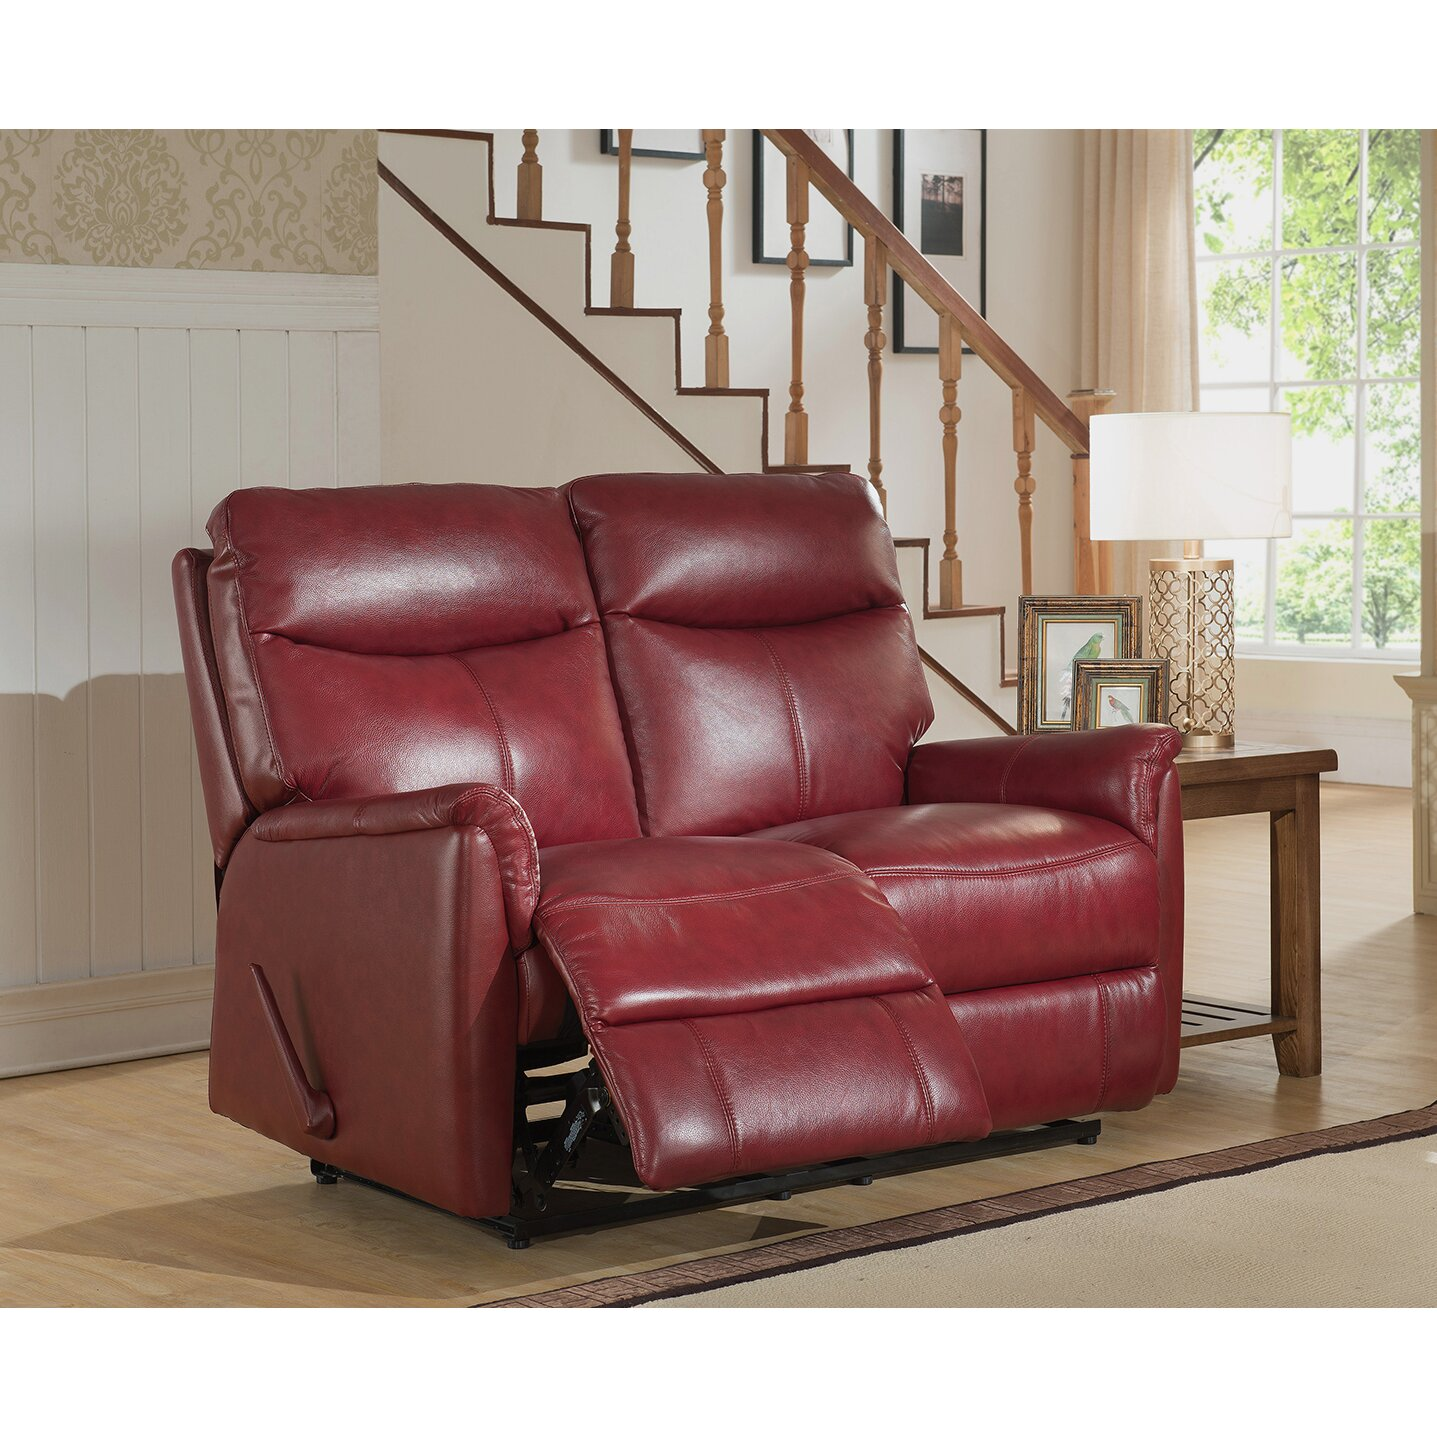 Amax napa top grain leather lay flat reclining sofa and for Couch and loveseat